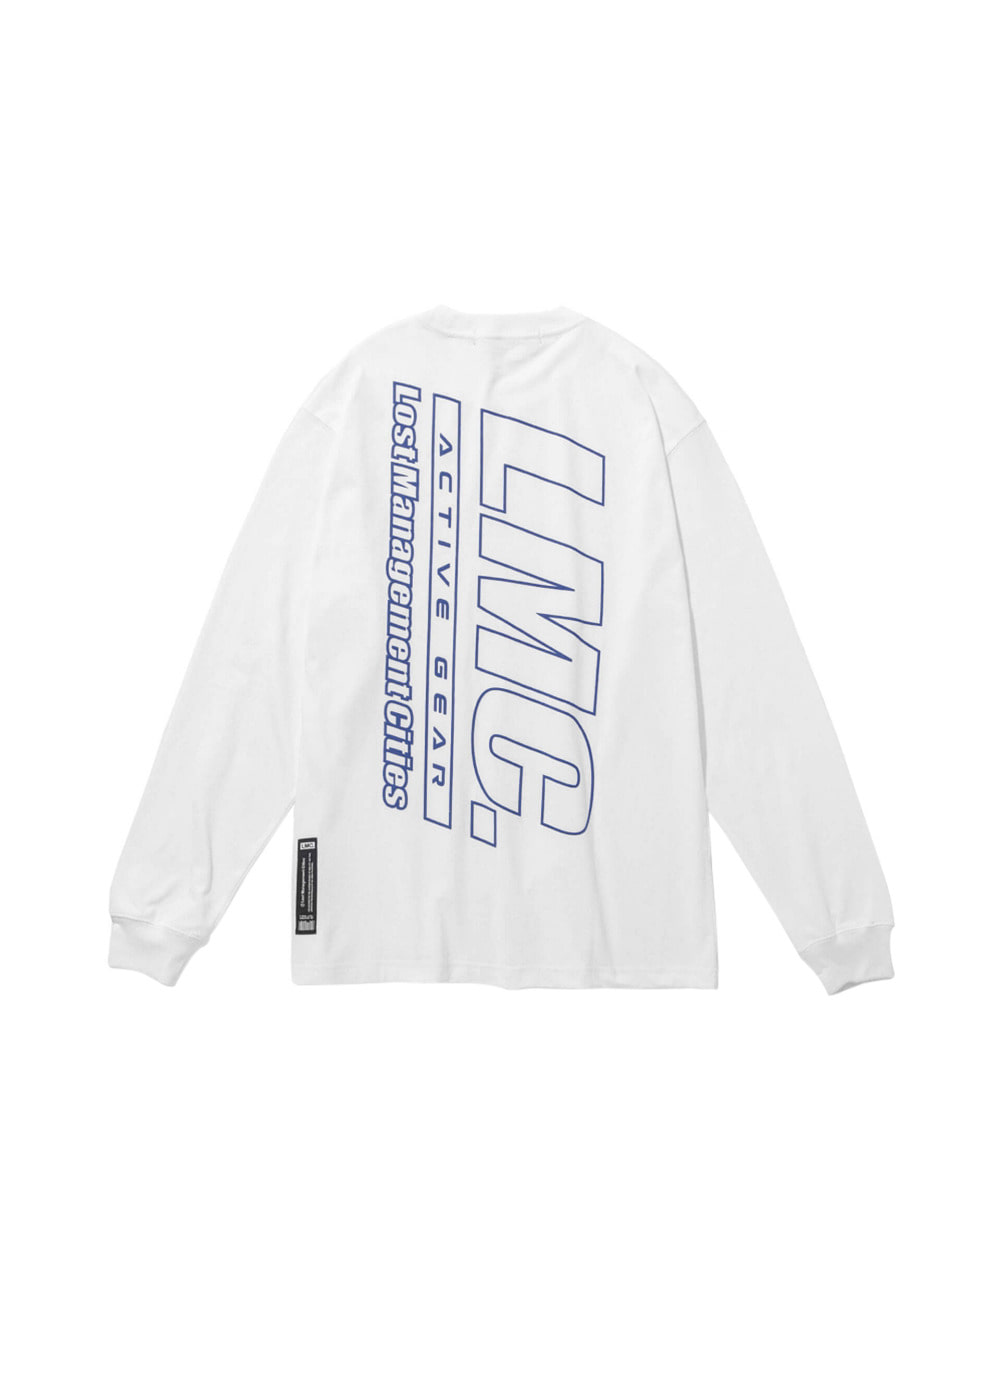 LMC ACTIVE GEAR LONG SLV TEE white